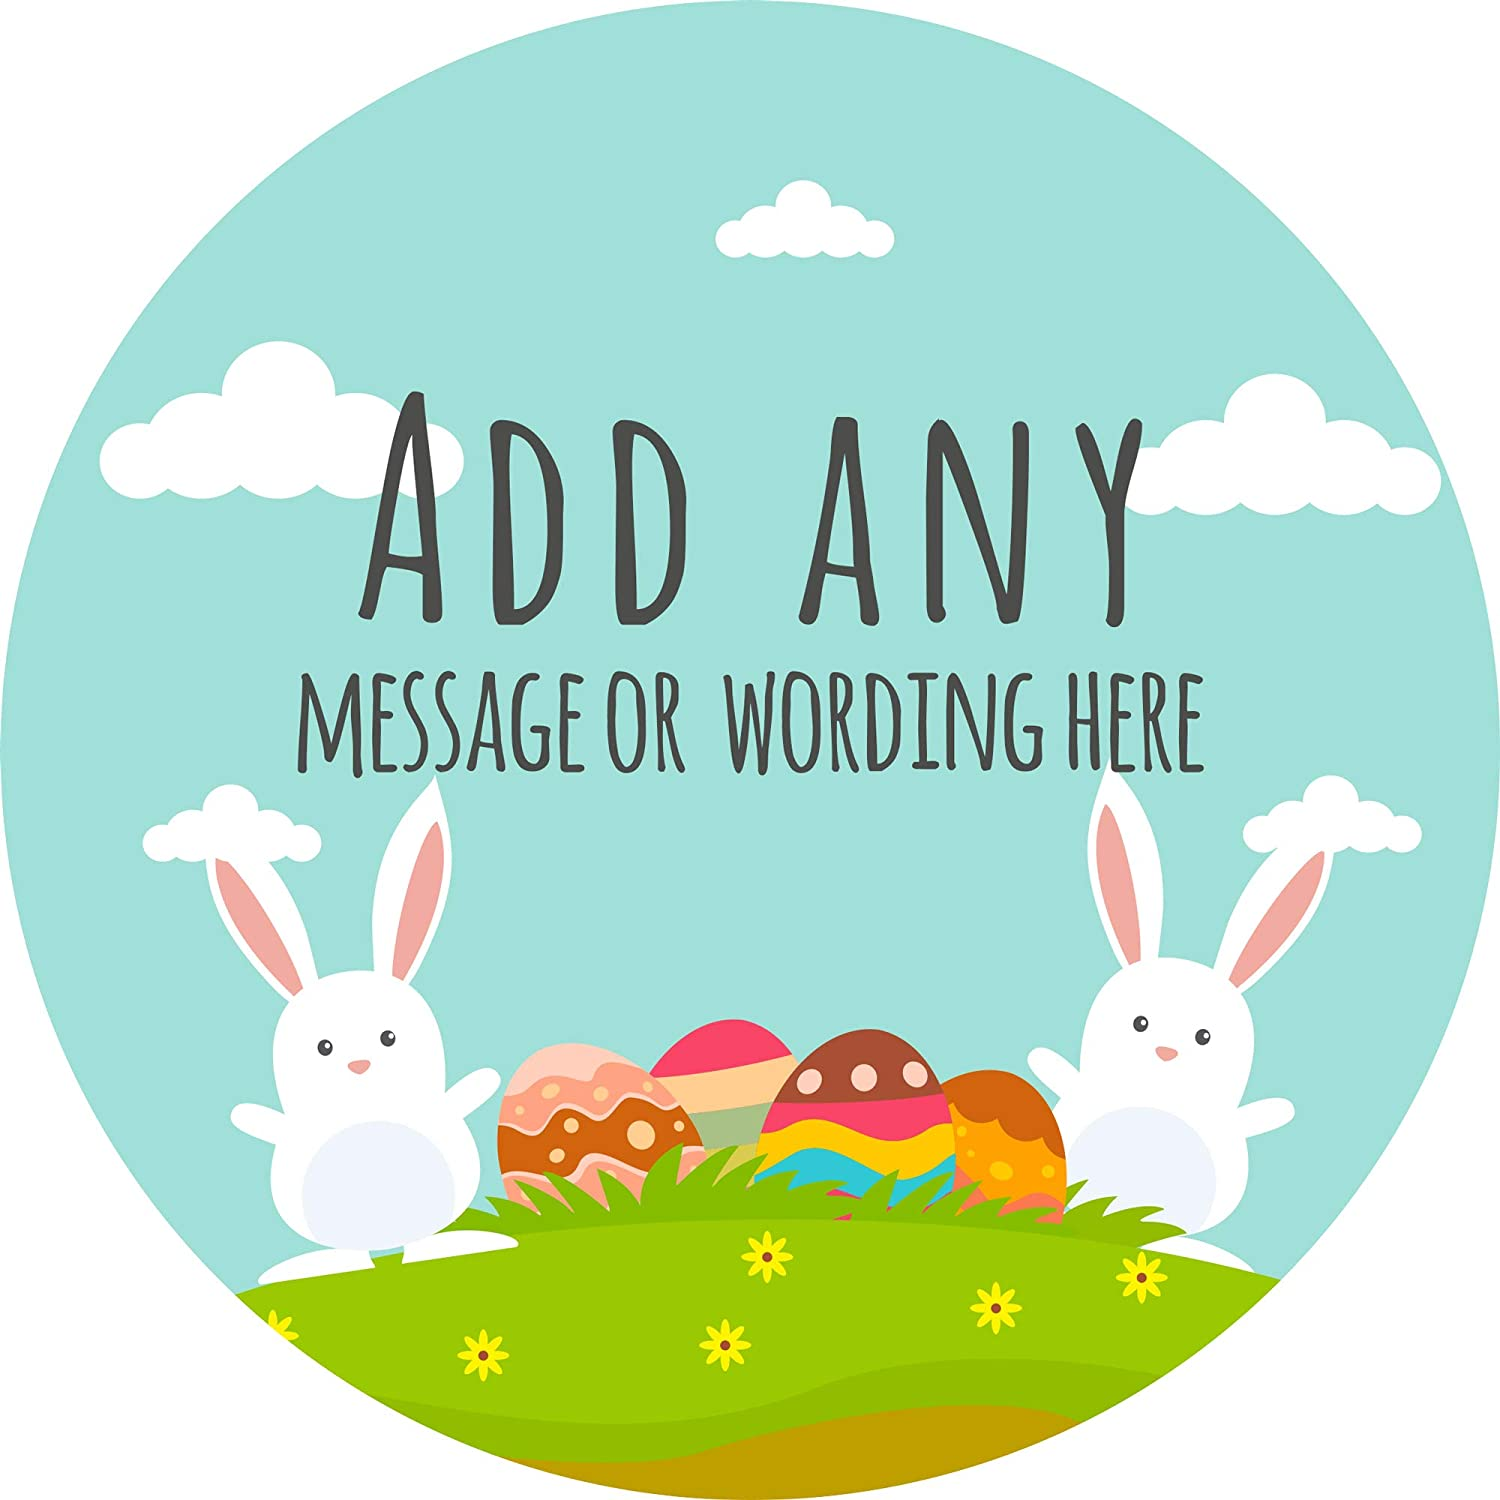 Personalised Custom Seals Ideal for Party Bags Sweet Cones Favours Jars Presentations Gift Boxes Bottles Crafts 6 Stickers, 9.5cm Each Happy Easter Bunnies with Eggs Sticker Labels